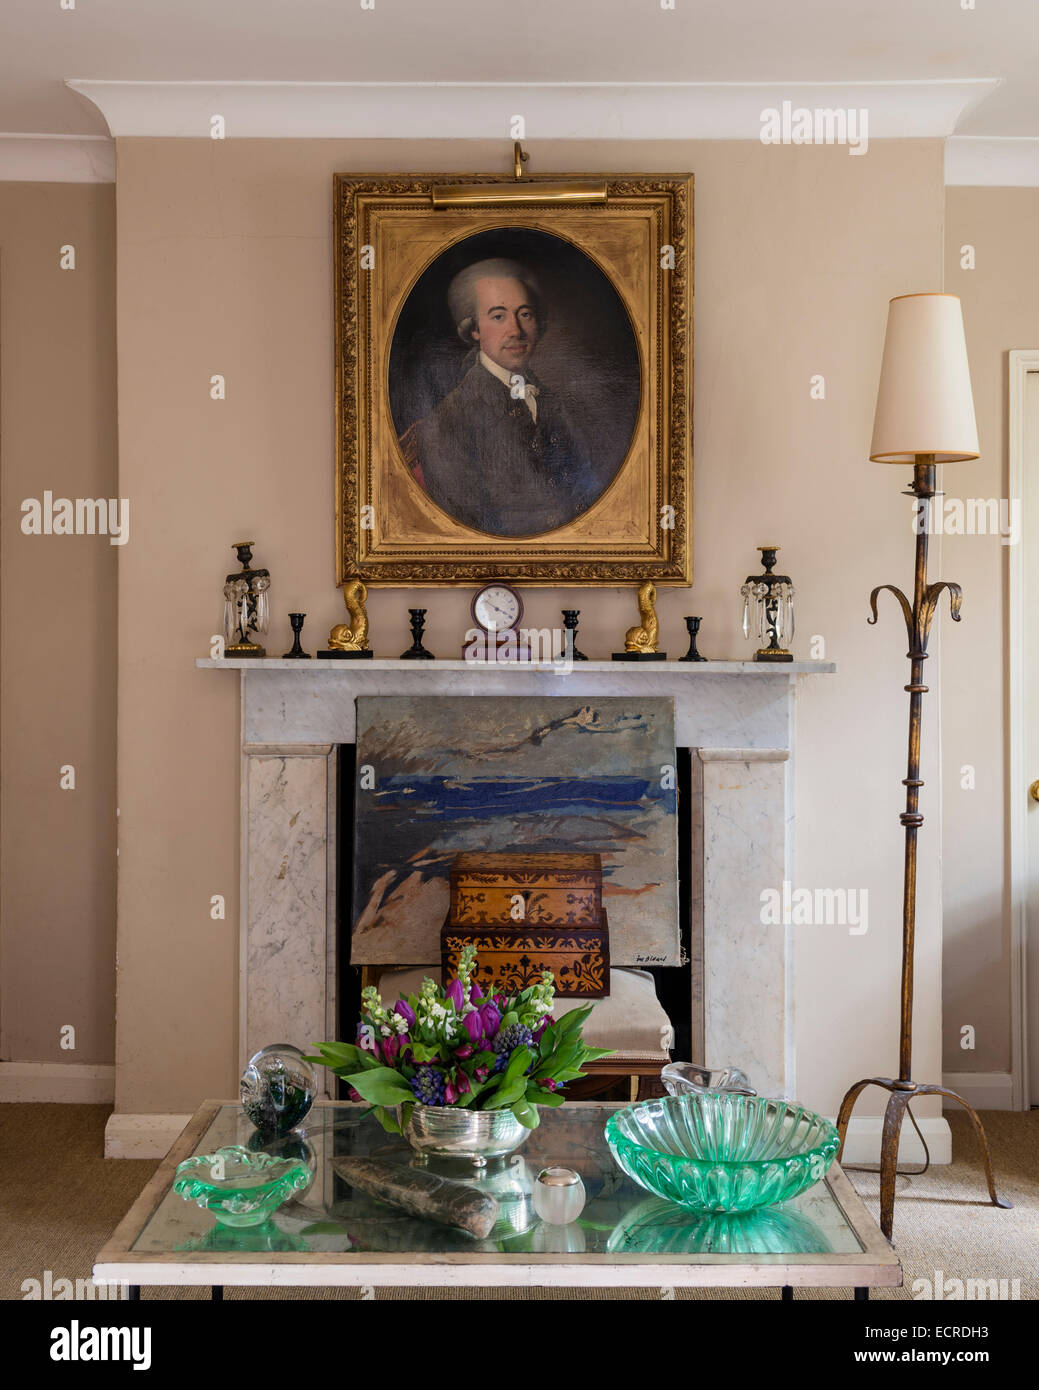 Gilt framed portrait above marble fireplace adorned with candle holders - Stock Image